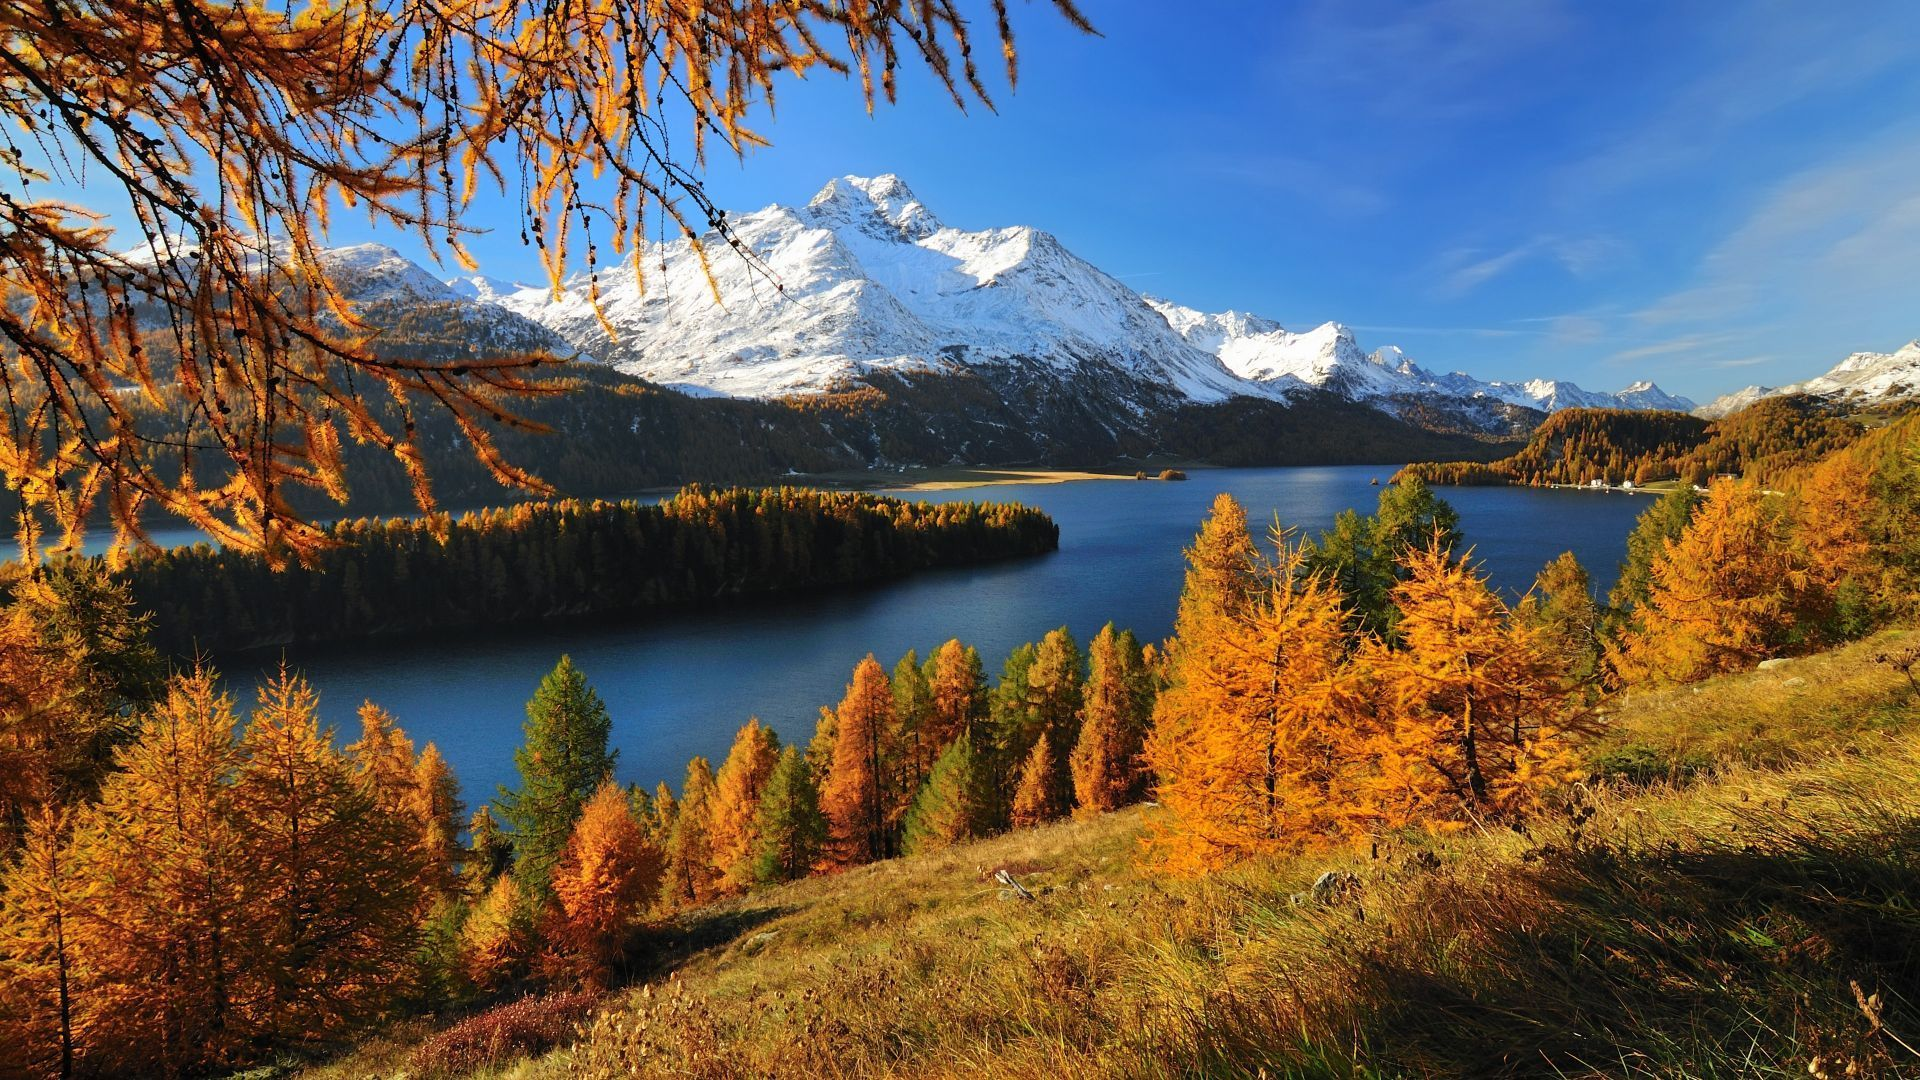 Autumn In The Swiss Mountains